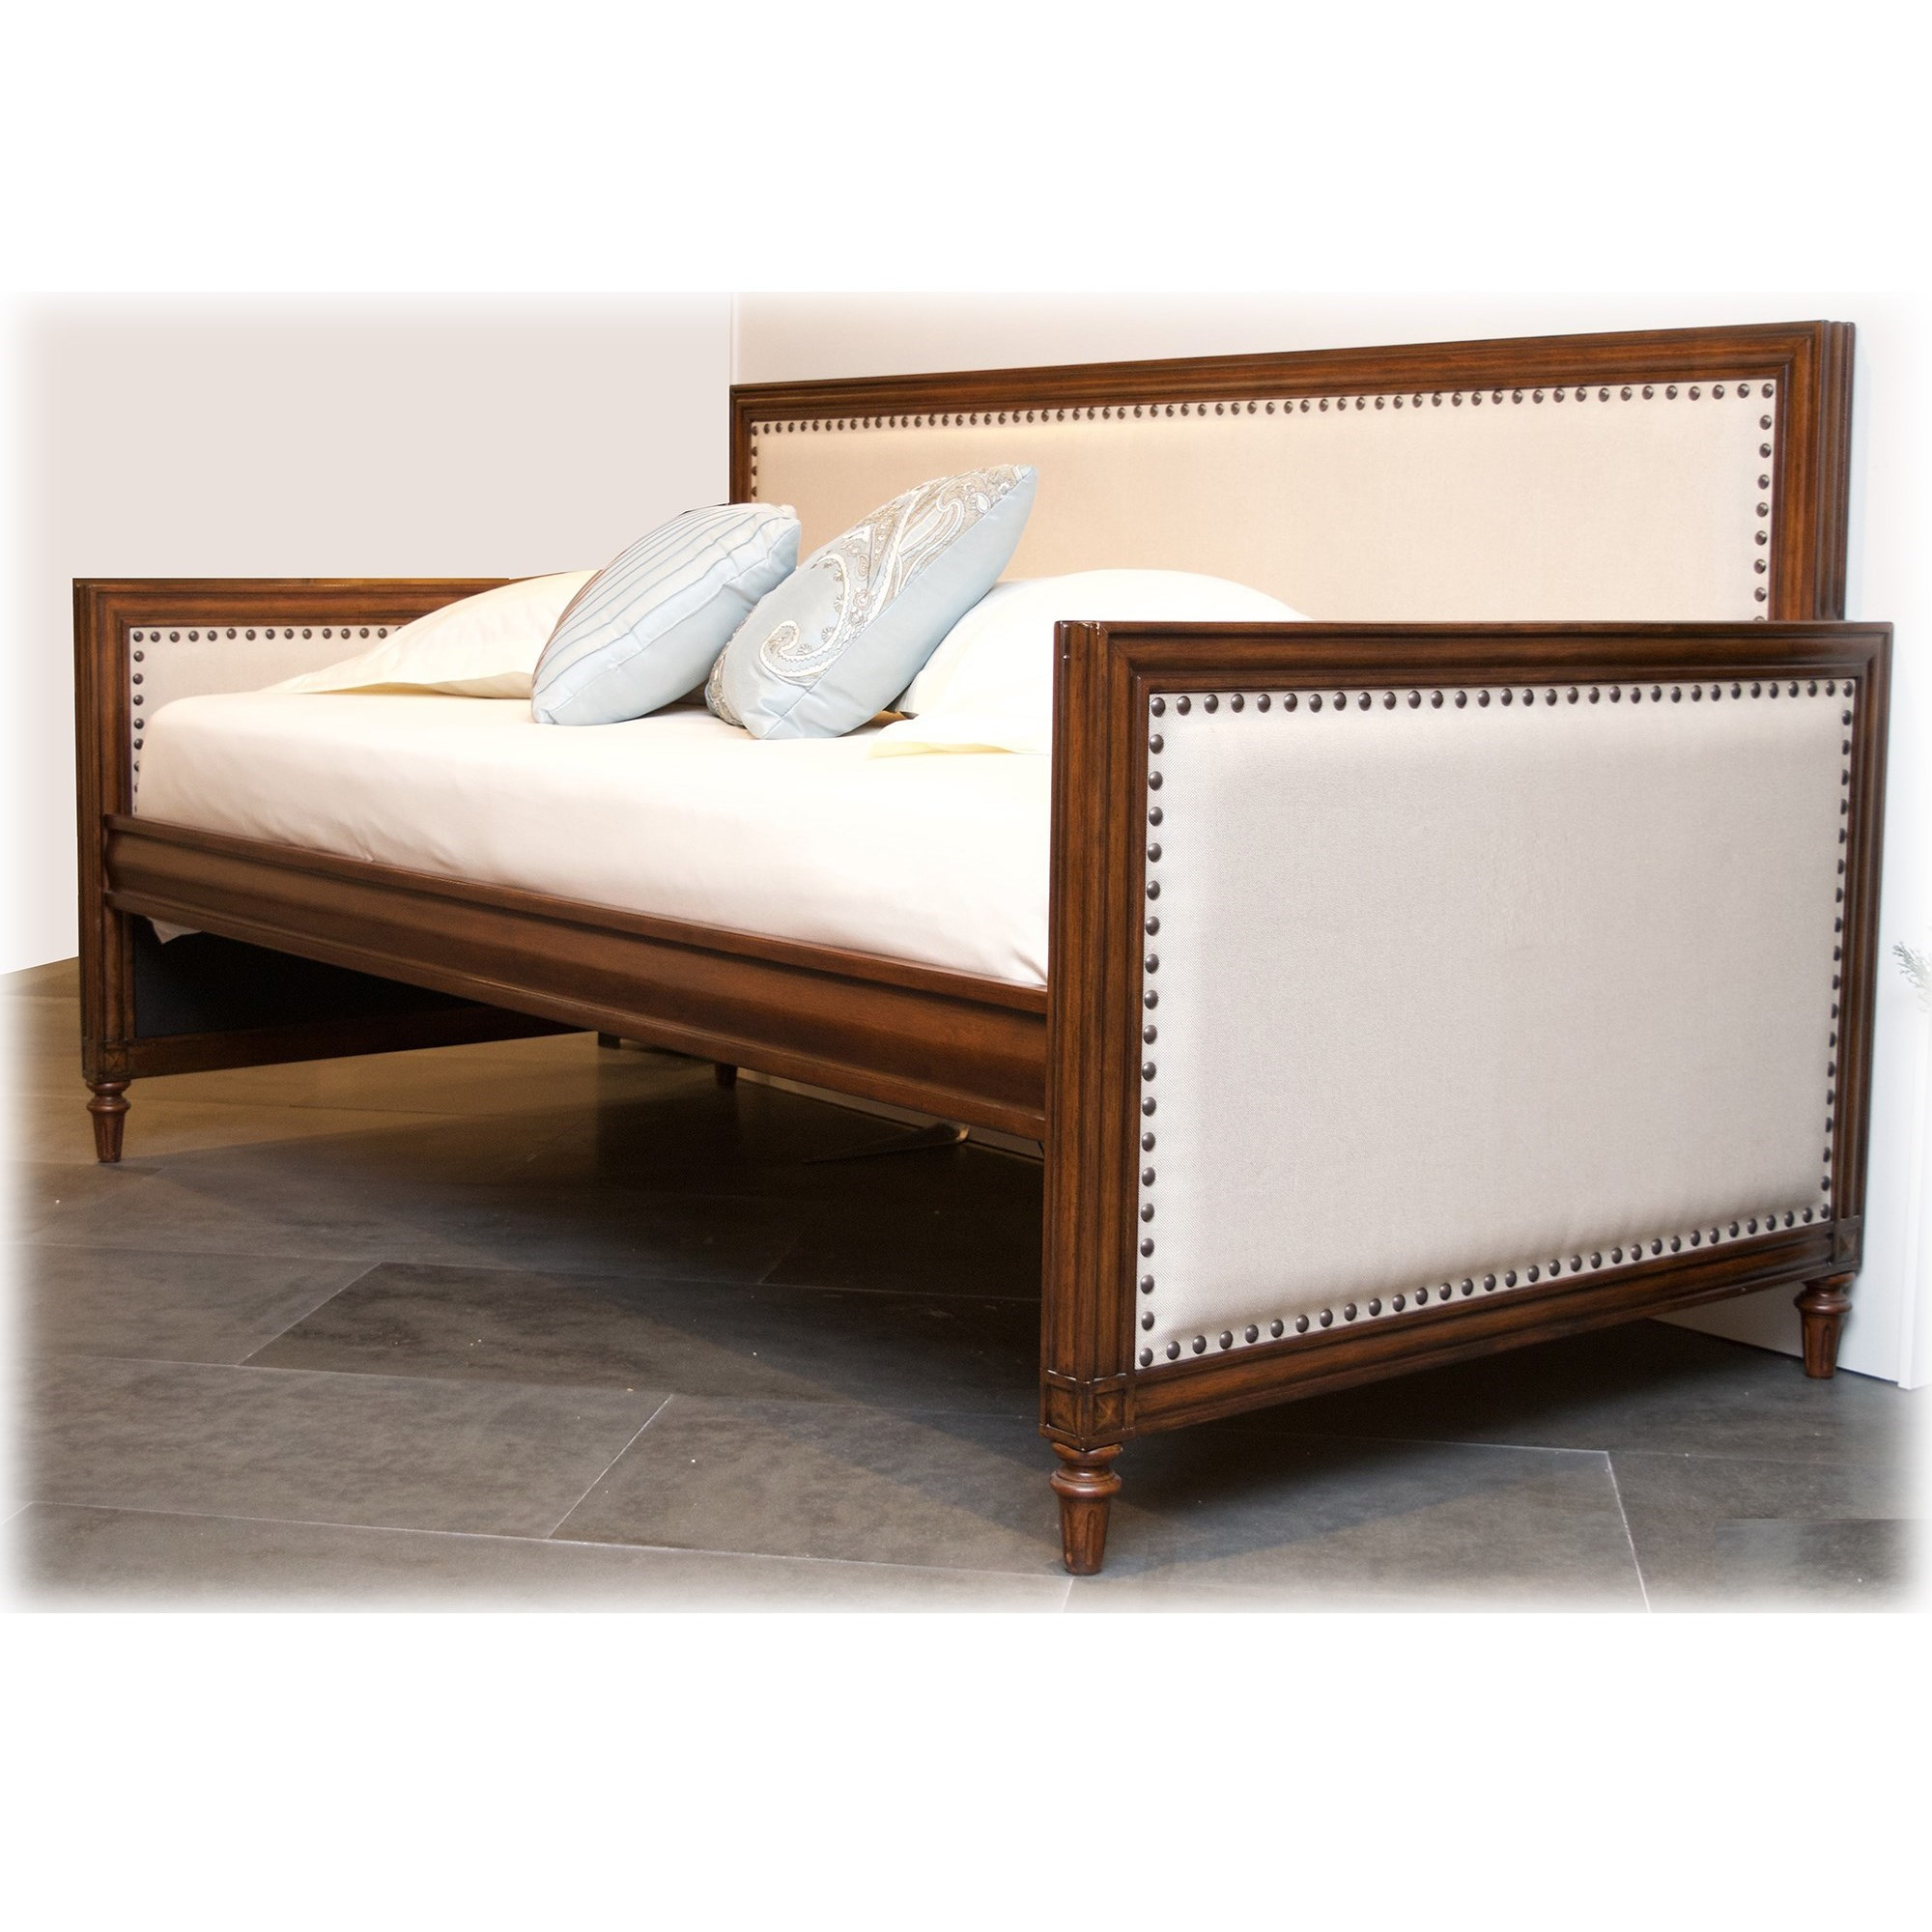 grandover wood daybed with nailhead trim and cream upholstery